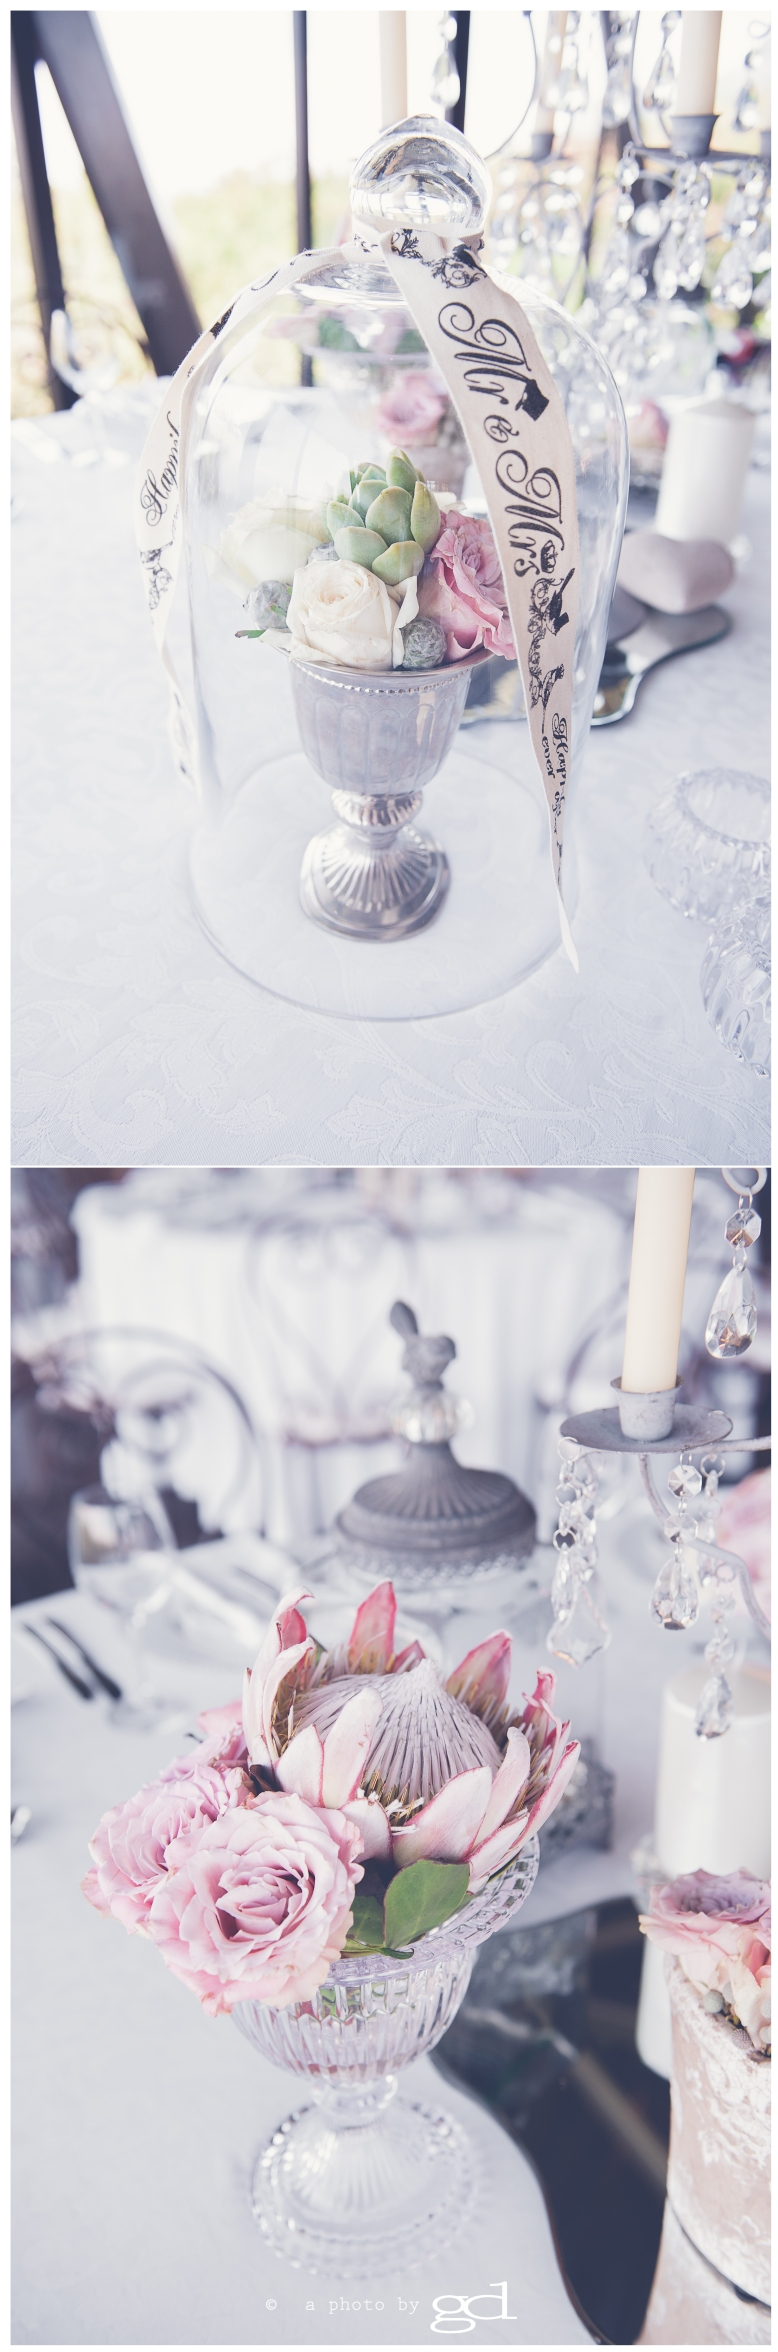 Red Ivory wedding decor, © a photo by gd